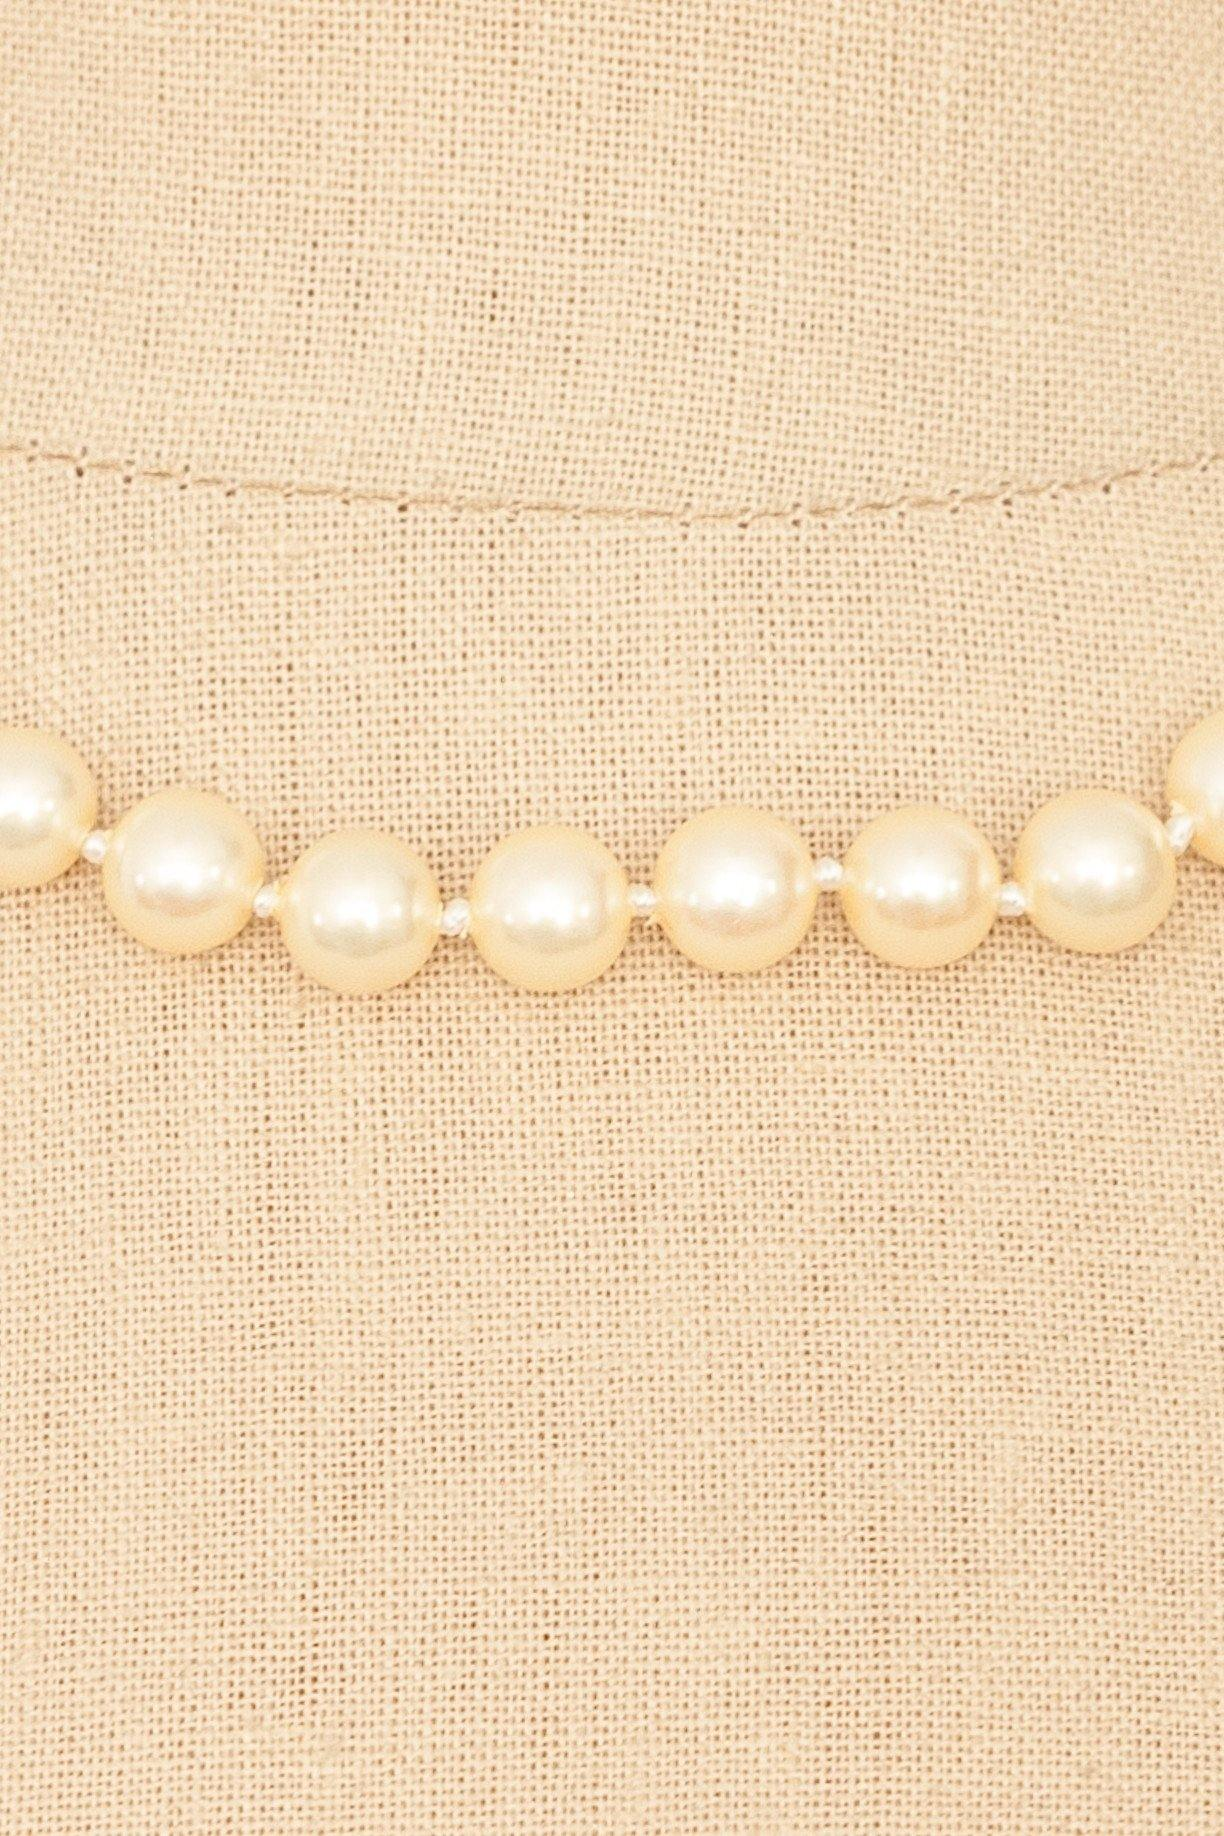 80's__Marvella__Classic Pearl Necklace